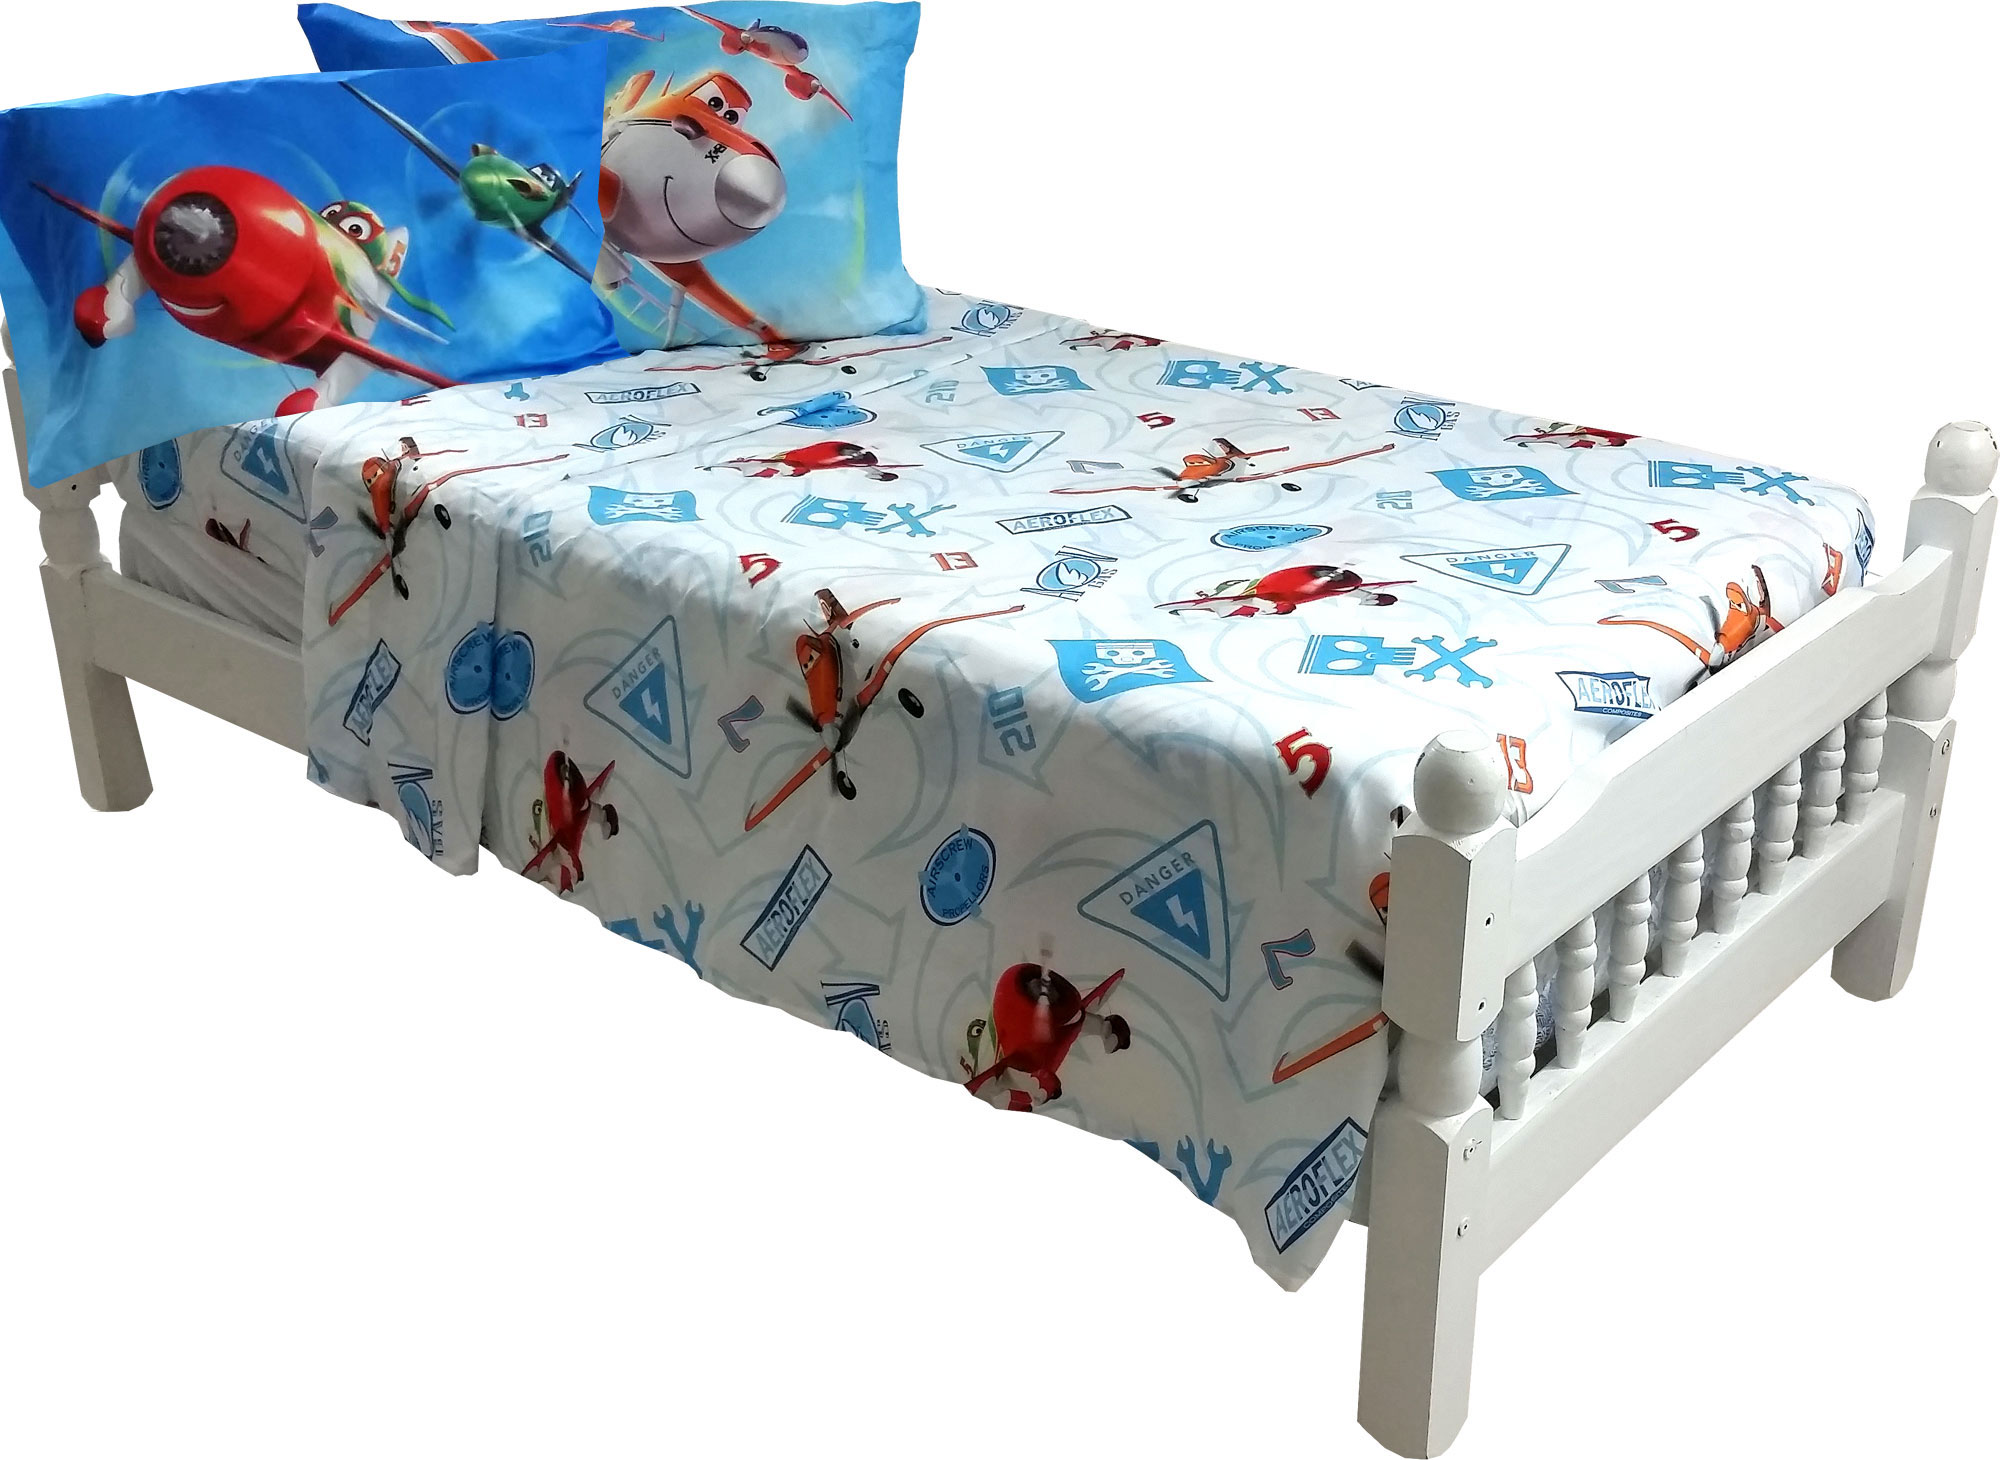 Disney Planes Full Bed Sheet Set - 4pc Dusty Crophopper On Your Mark Bedding 27622